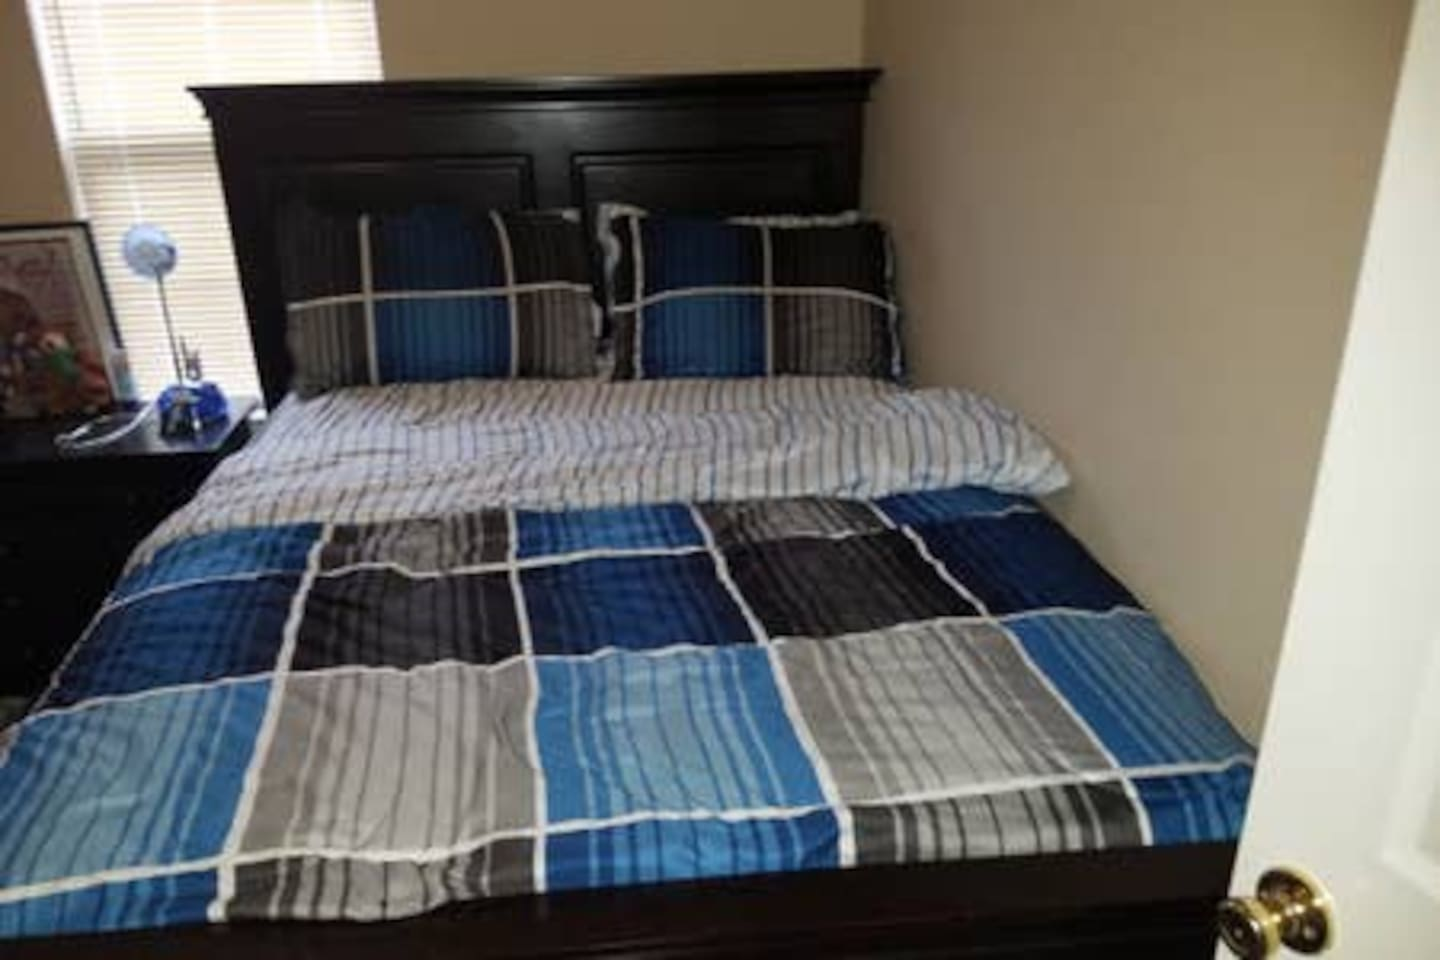 There are two bedrooms with similar beds and furniture just like the ones you are looking at on this picture. Then there is another with different kinds of furniture making a total of three bedrooms here. Each booking gets one bedroom of its own.